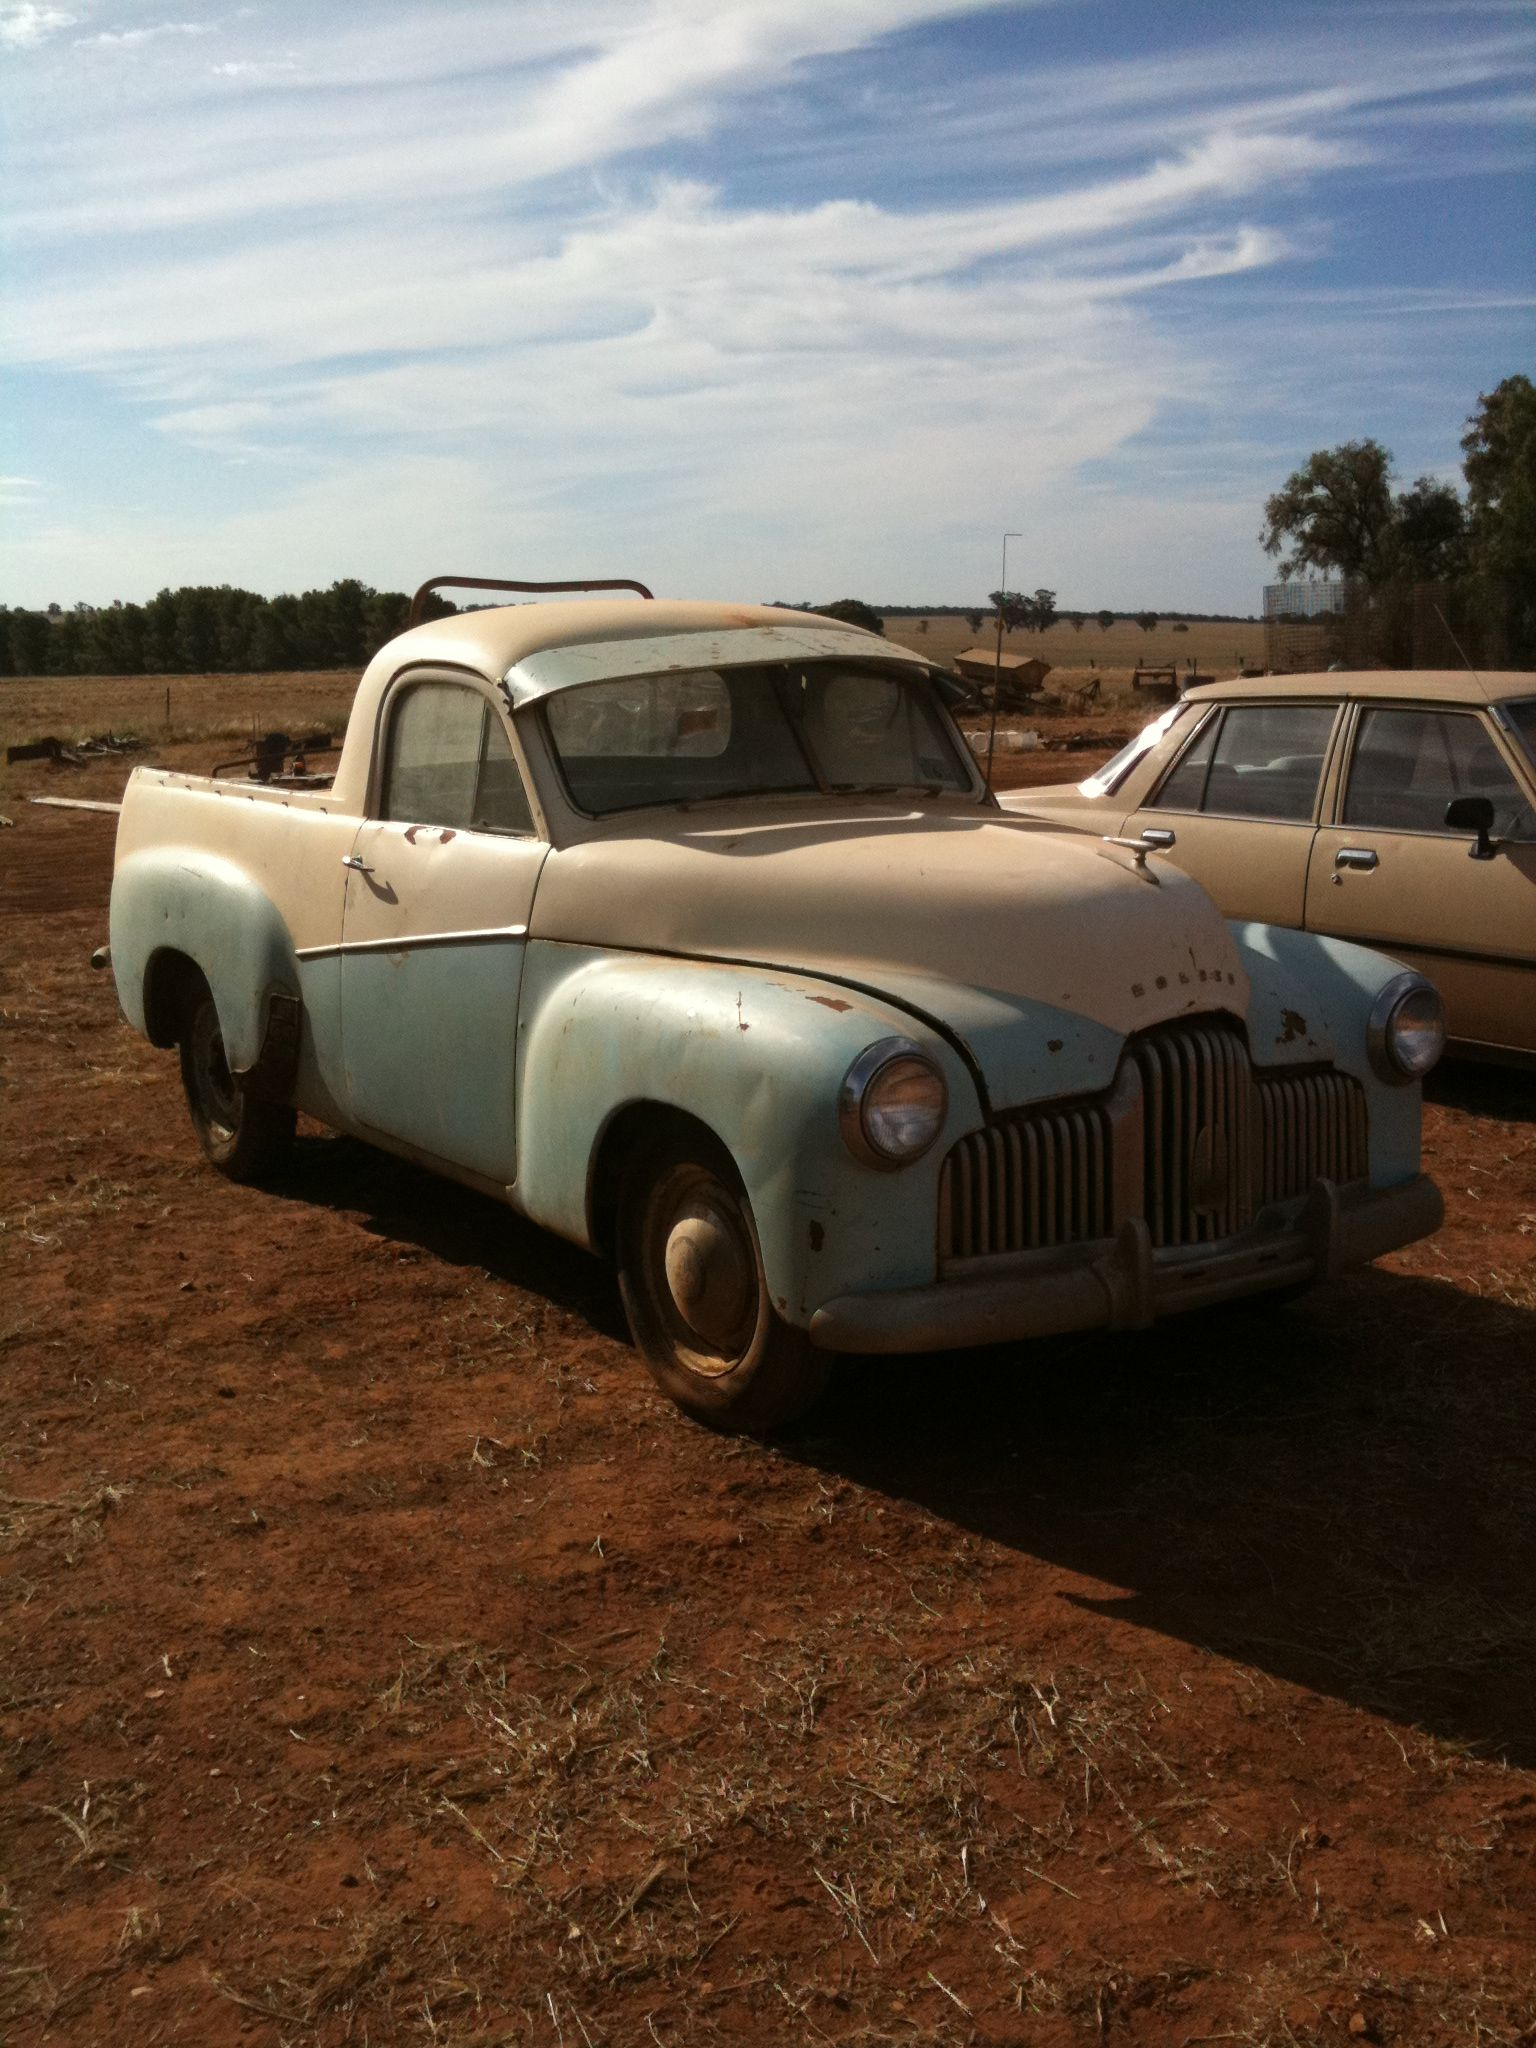 1952 FX Holden ute, farm clearing sale, West Wyalong NSW